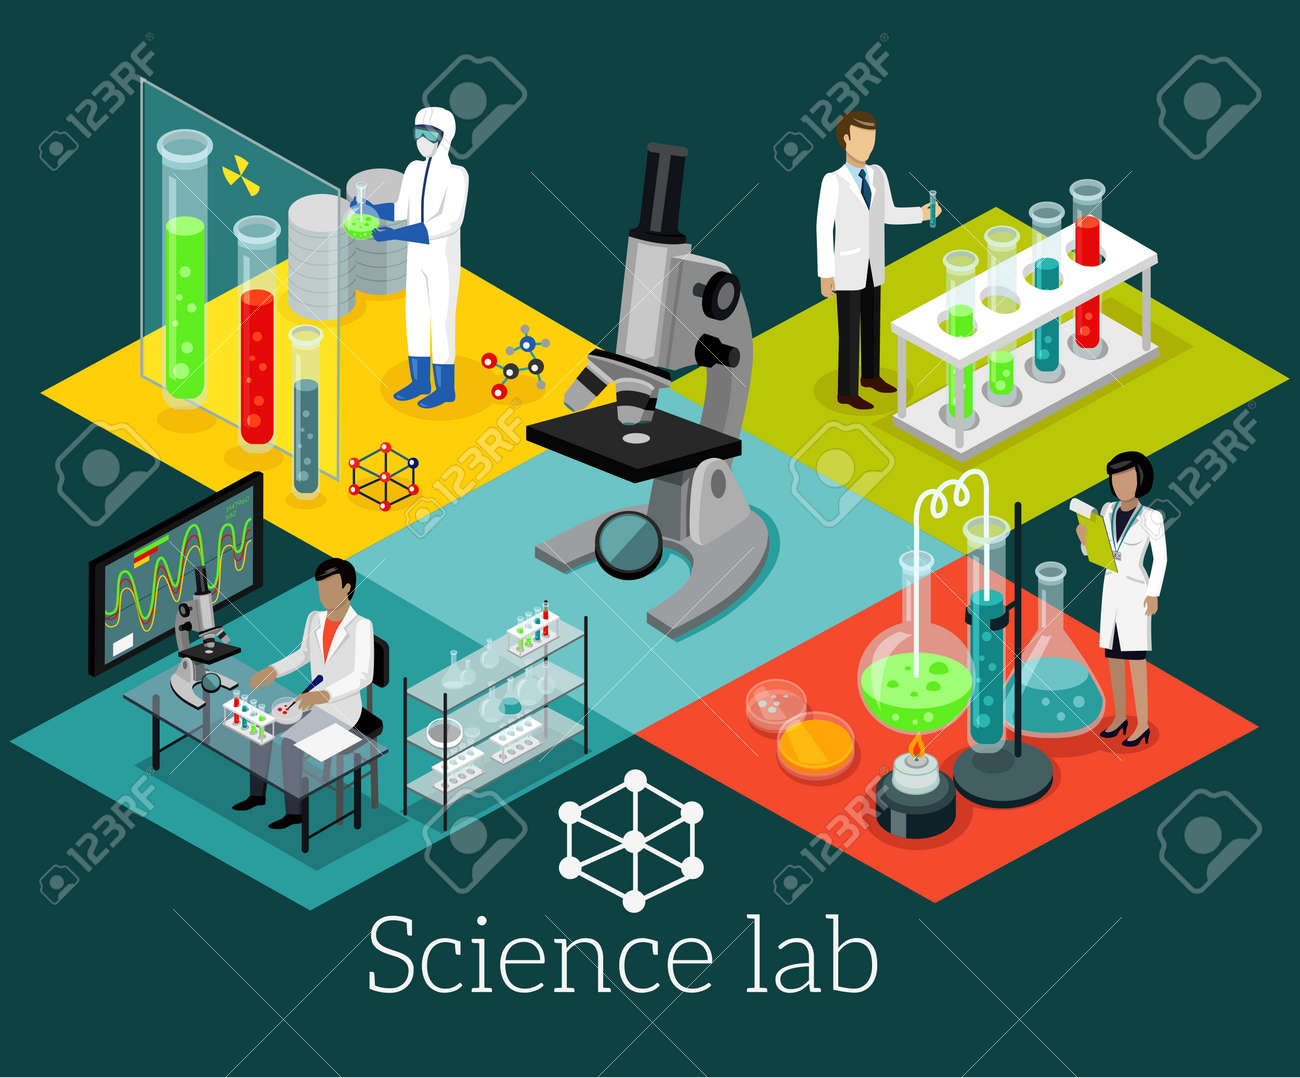 Science lab isomatric design flat. Science and scientist, science laboratory, lab chemistry, research scientific, microscope and experiment, chemical lab science test, technology illustration - 51856430